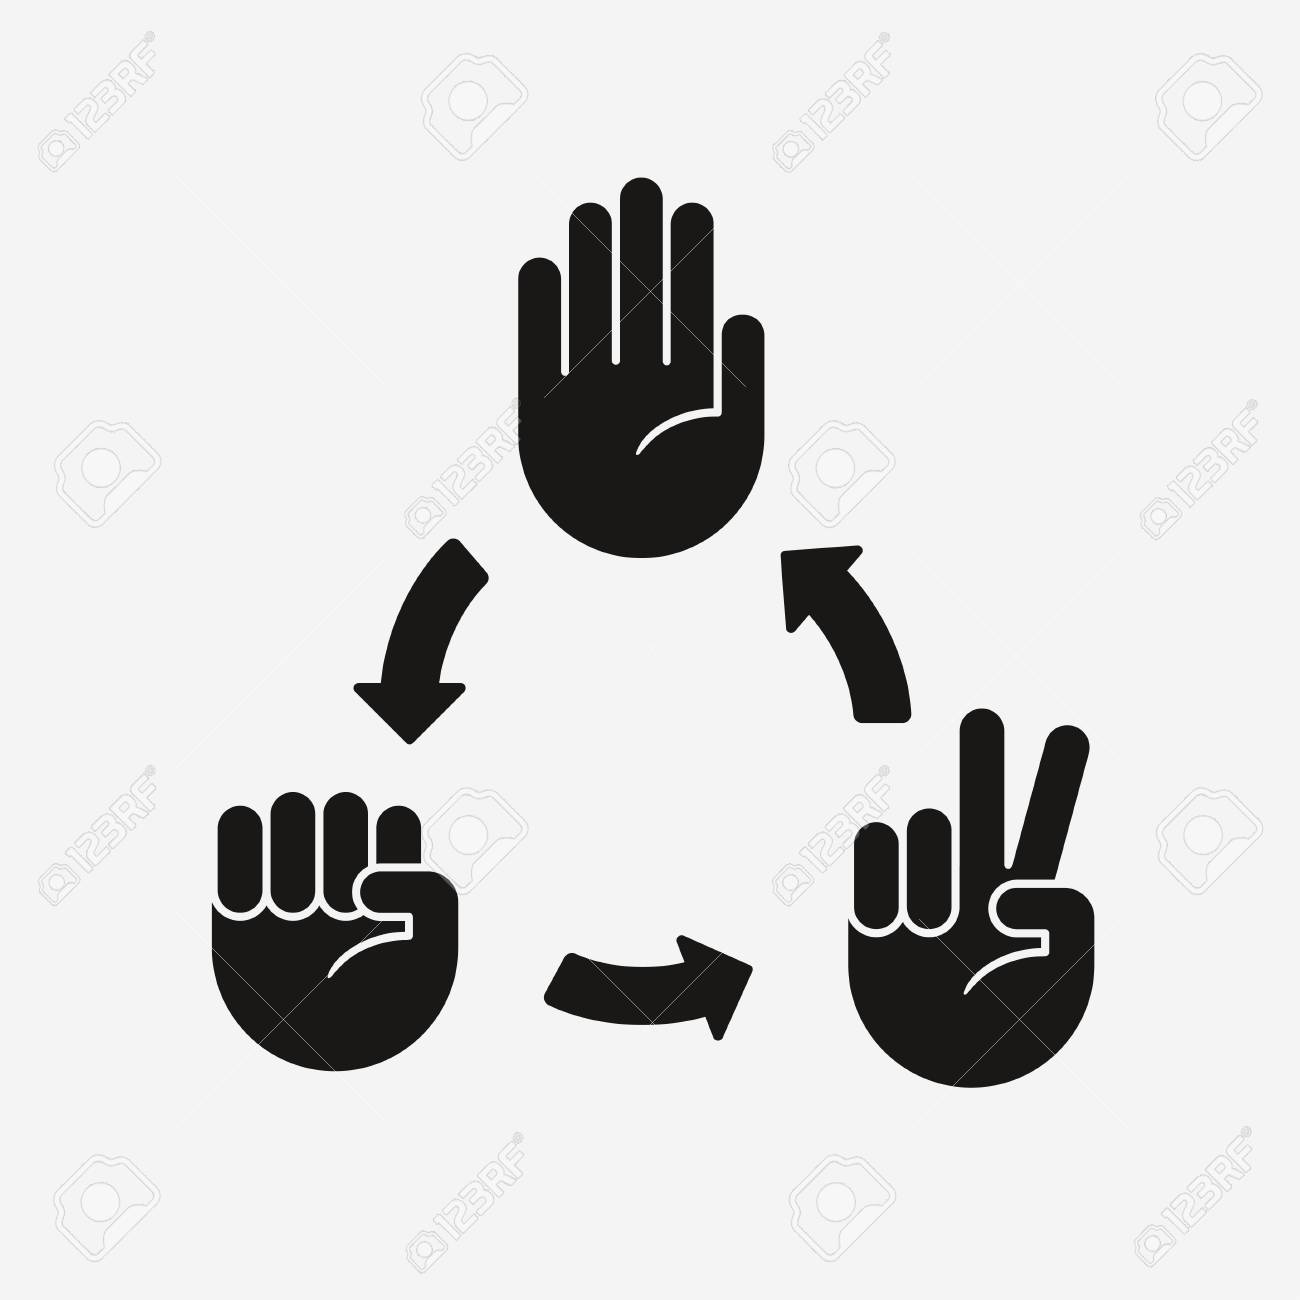 Rock Paper Scissors game diagram. Hand icons with arrows showing which gesture wins. - 84663576